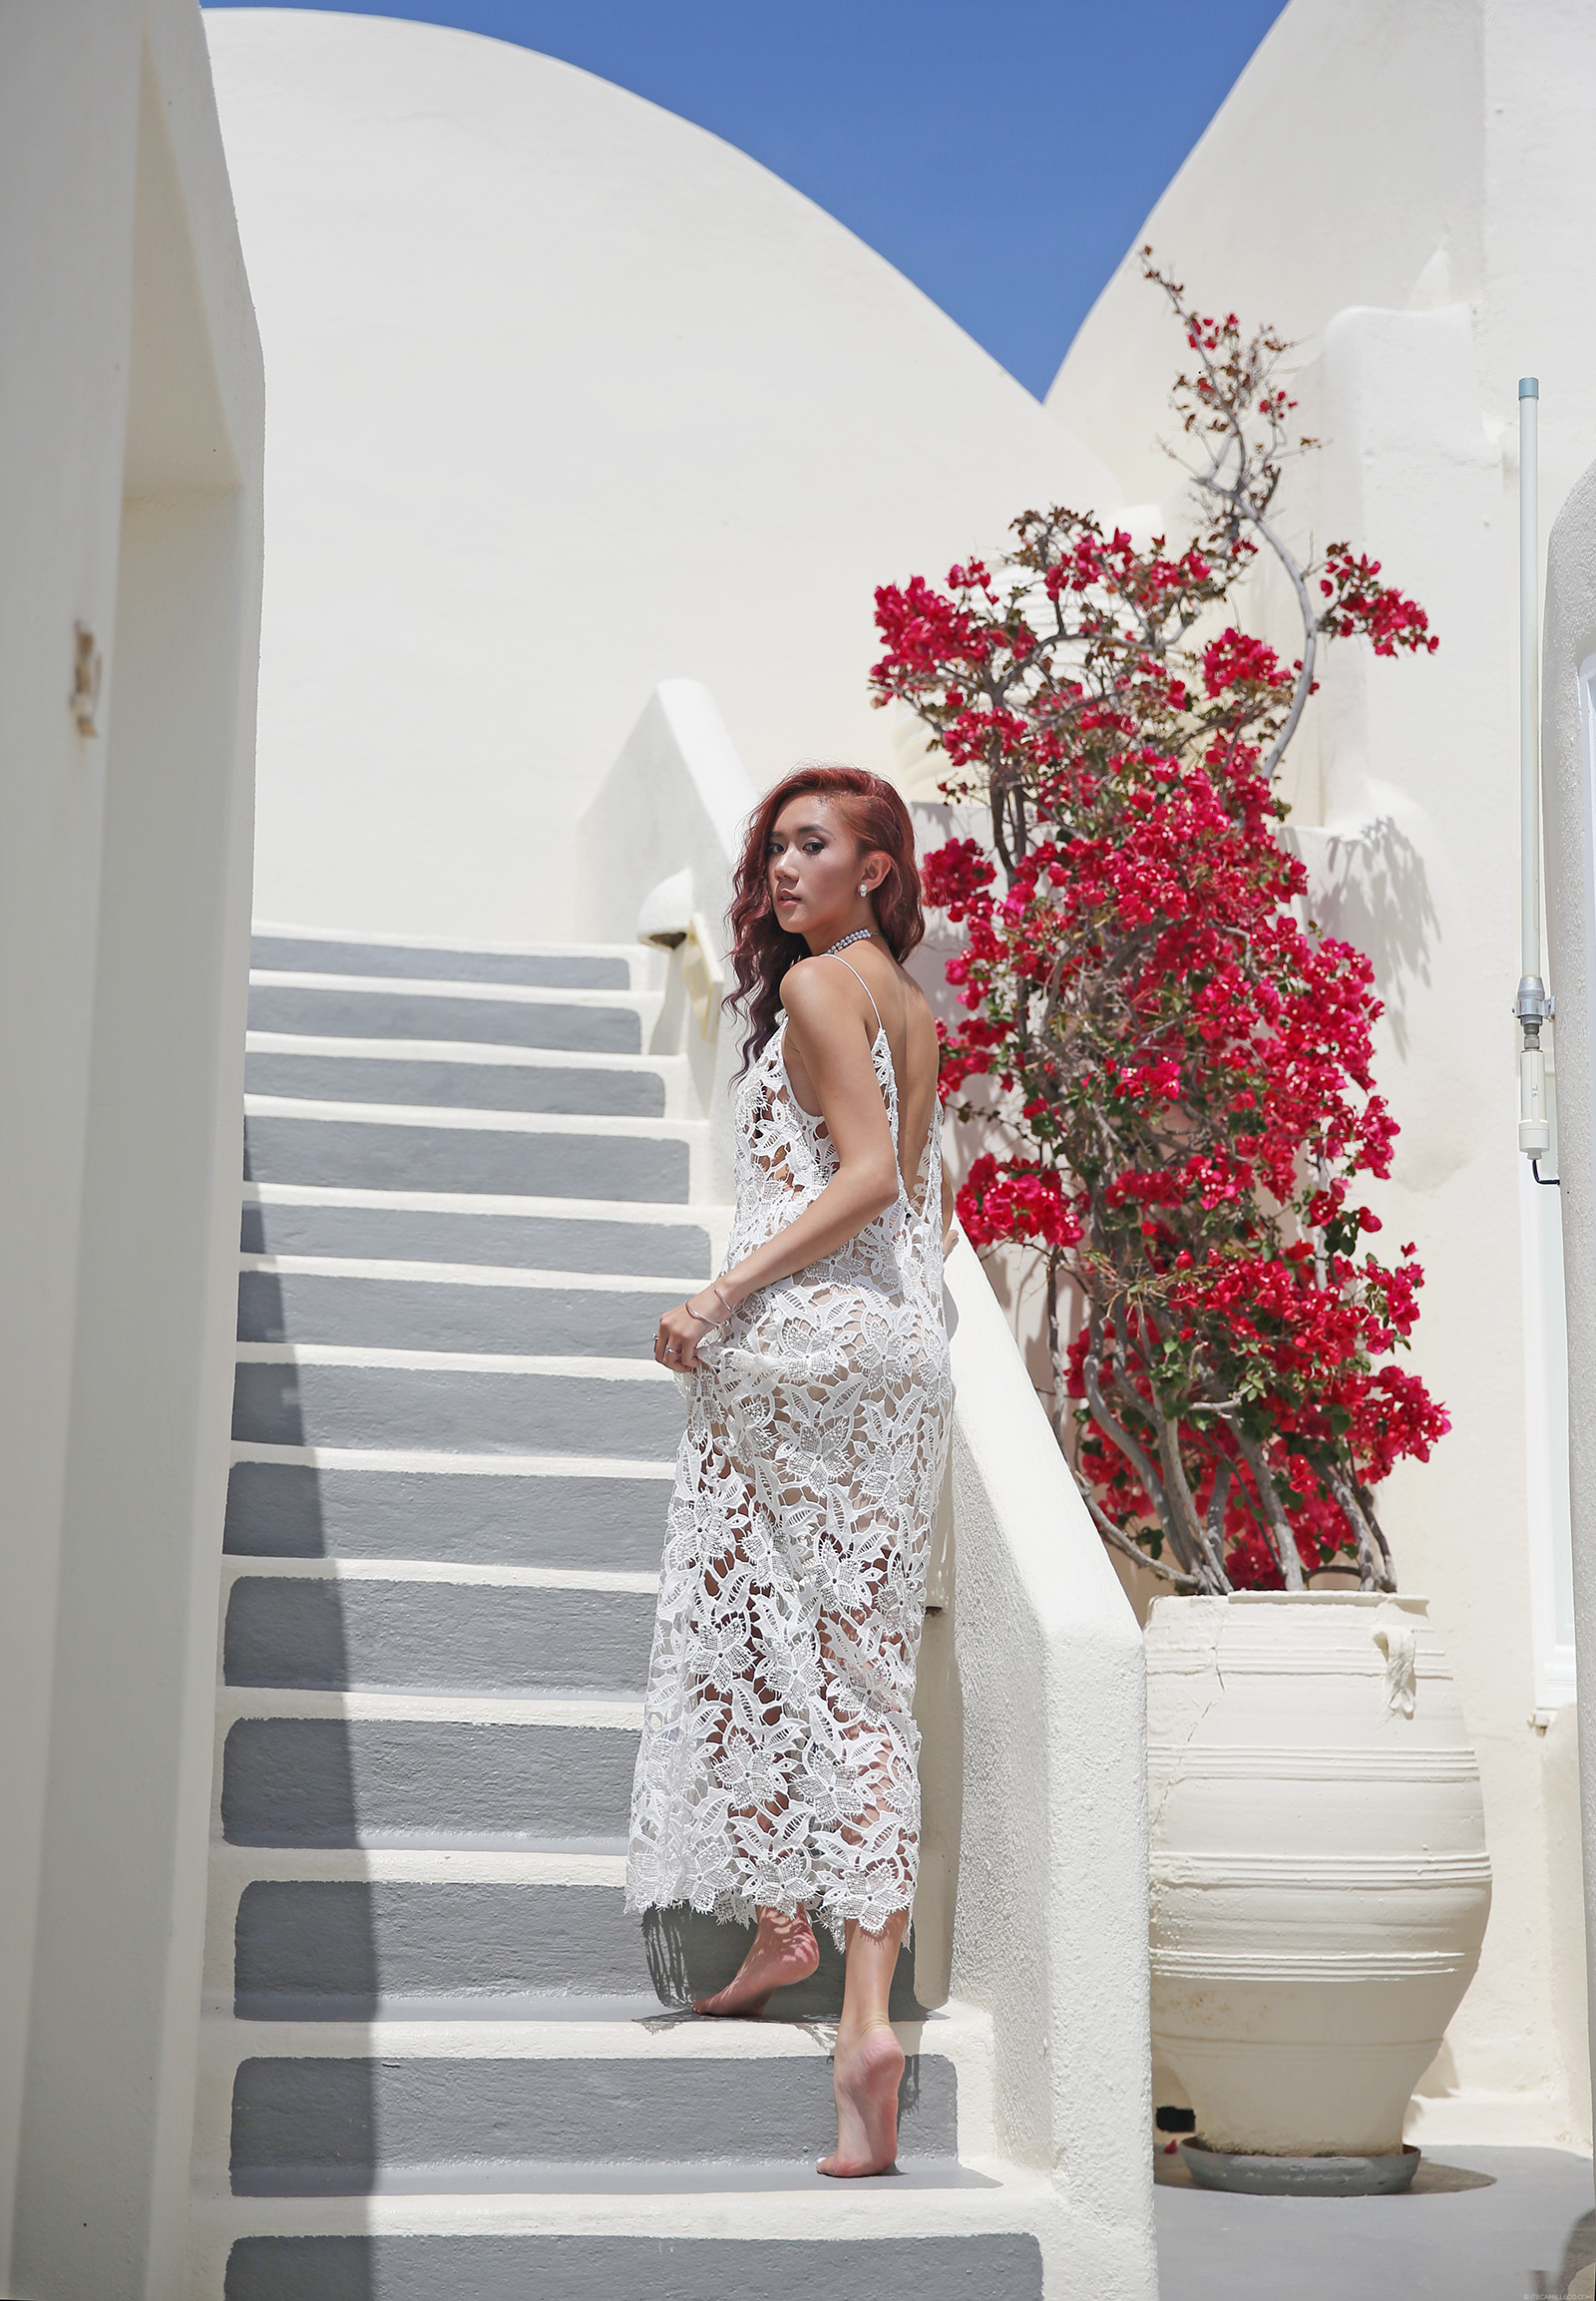 Santorini Fashion, lace dress by Na-kd | www.itscamilleco.com